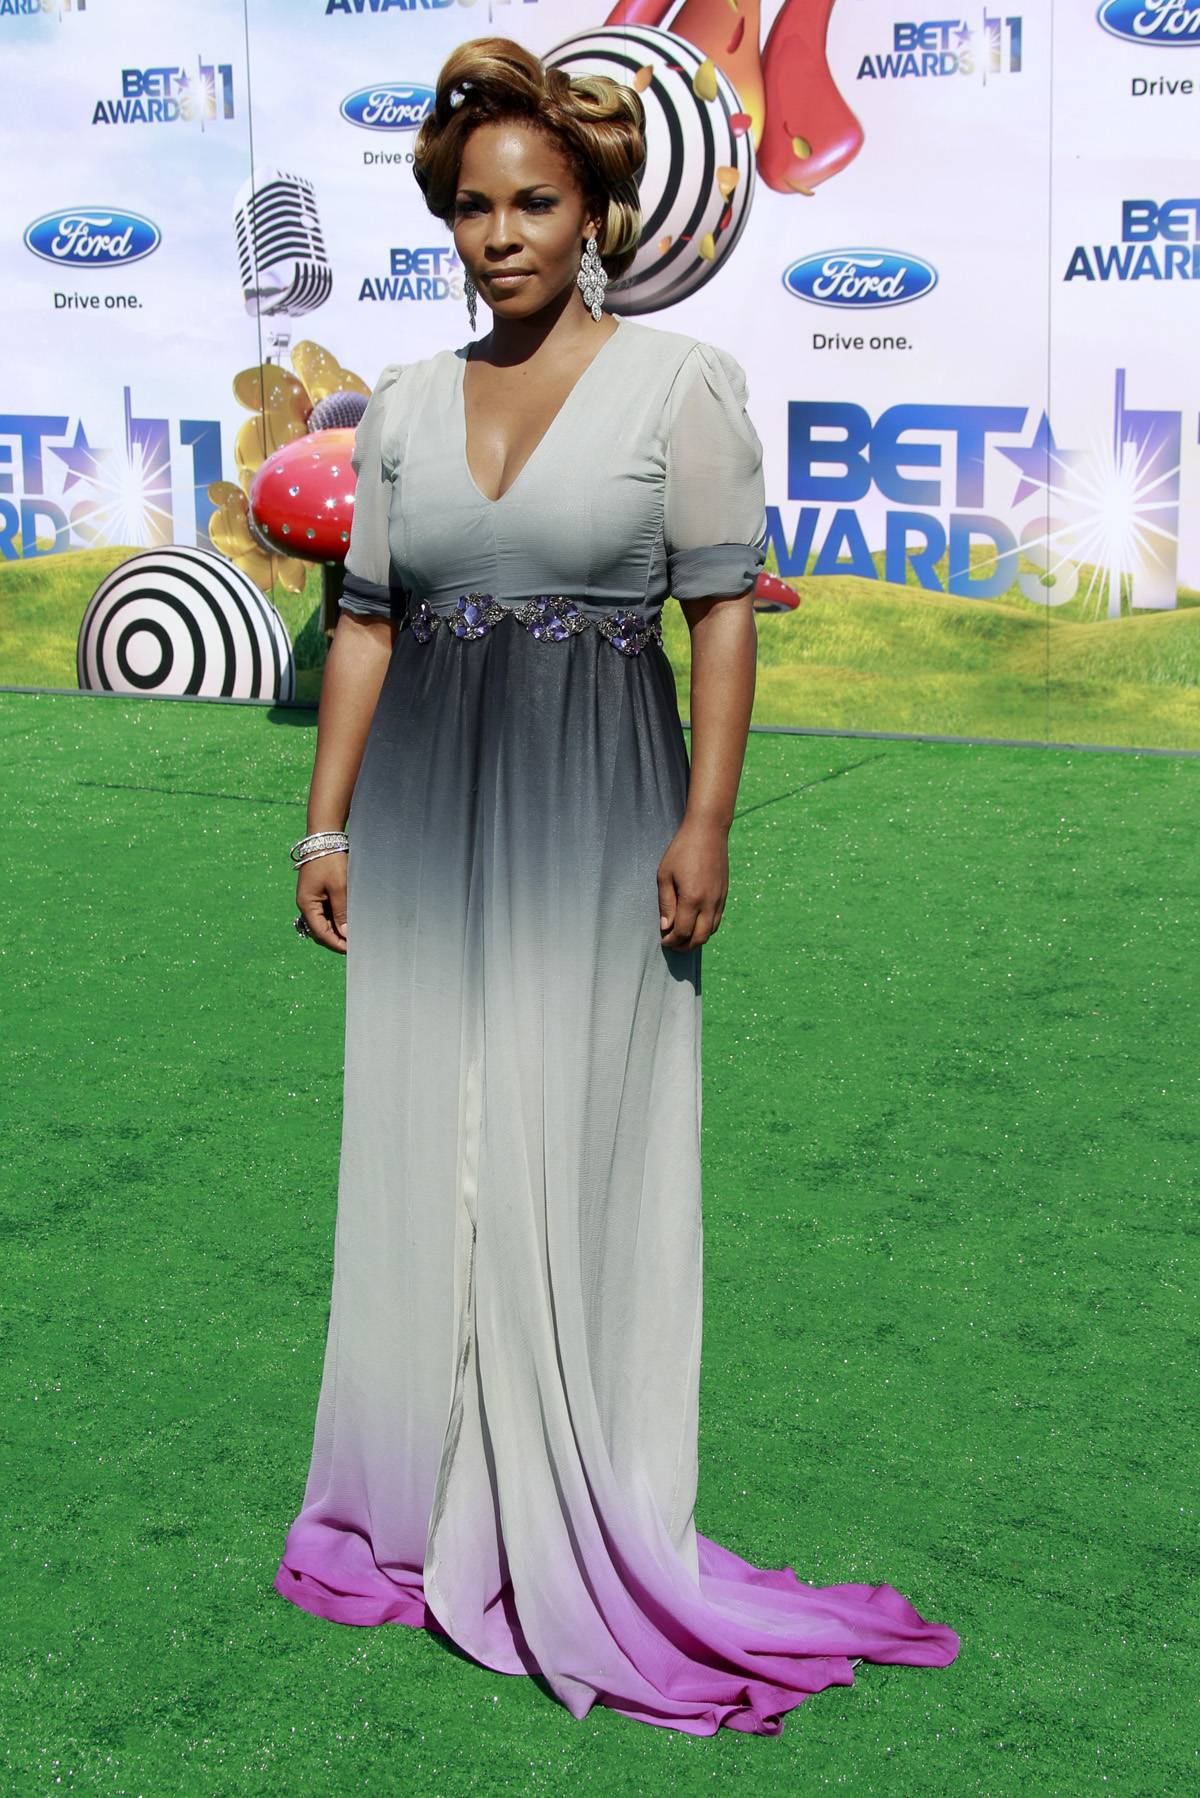 Trending Topic - Free generated quite the Internet buzz following the 2011 BET Awards thanks to her knockout dress on the red carpet. Matter of fact, she's still got Twitter going nuts! Catch her this season as the host of Lens on Talent Season 3.(Photo by PictureGroup)